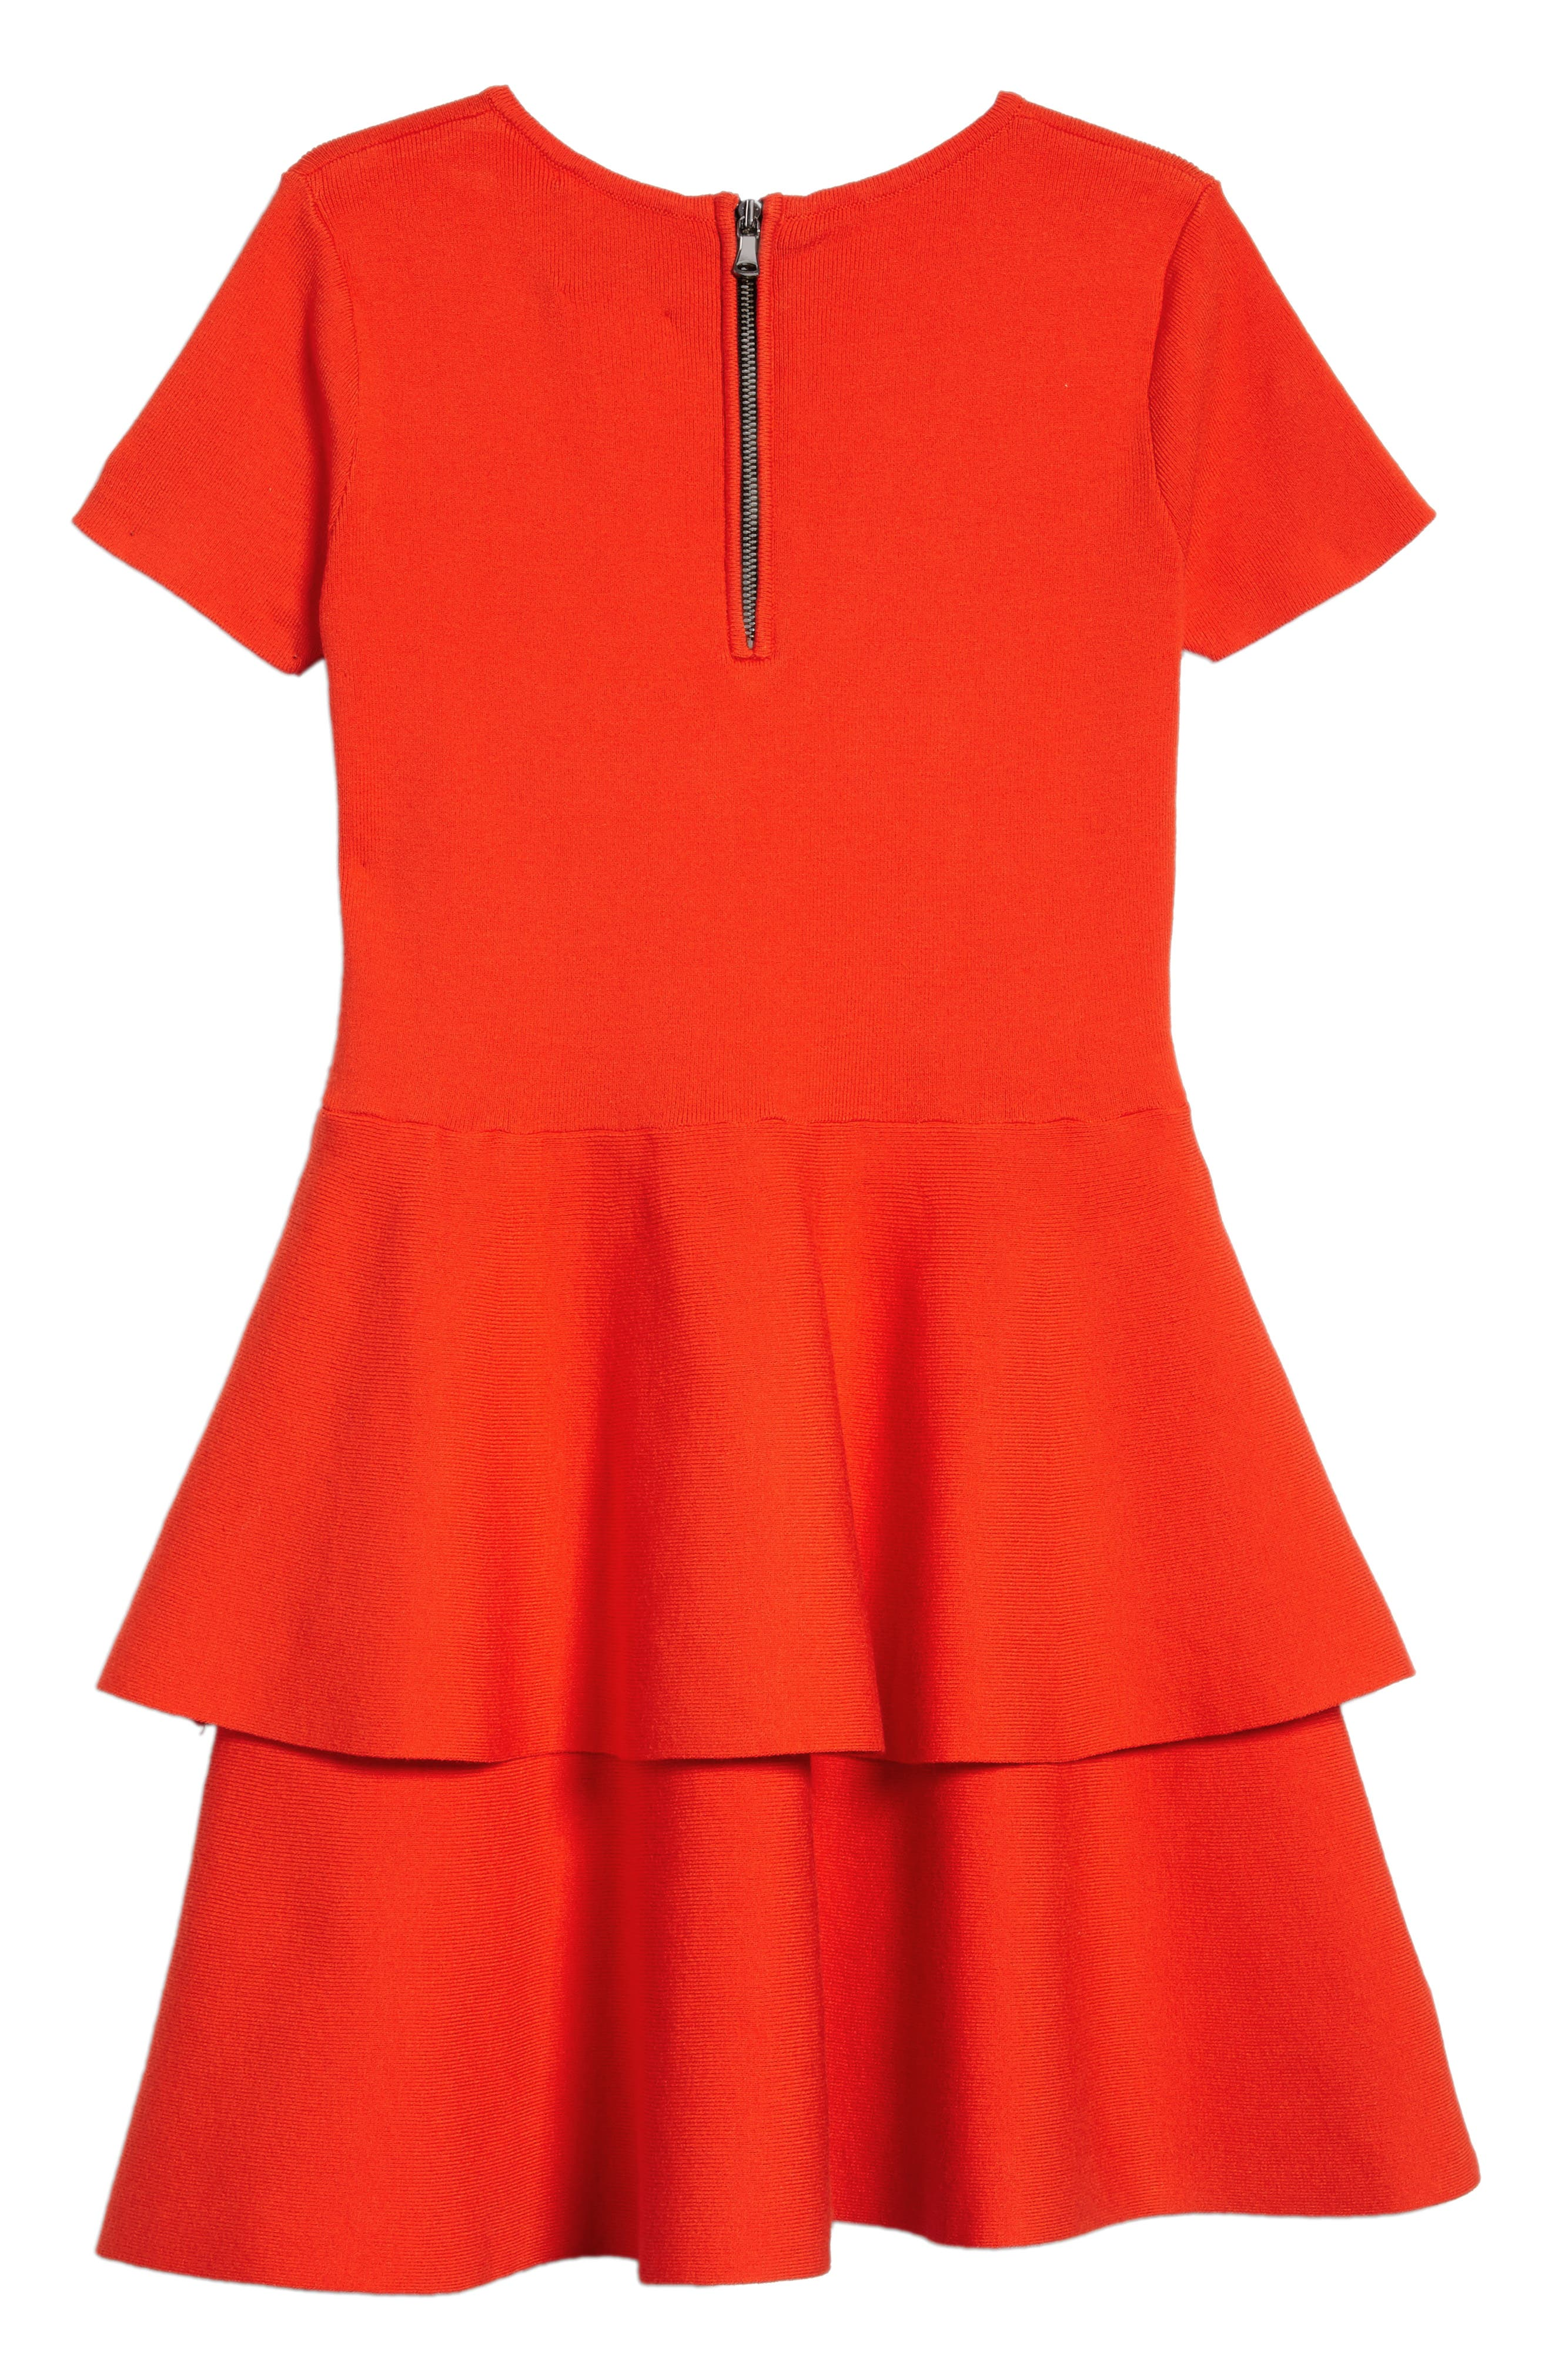 Tiered Dress,                             Alternate thumbnail 2, color,                             620